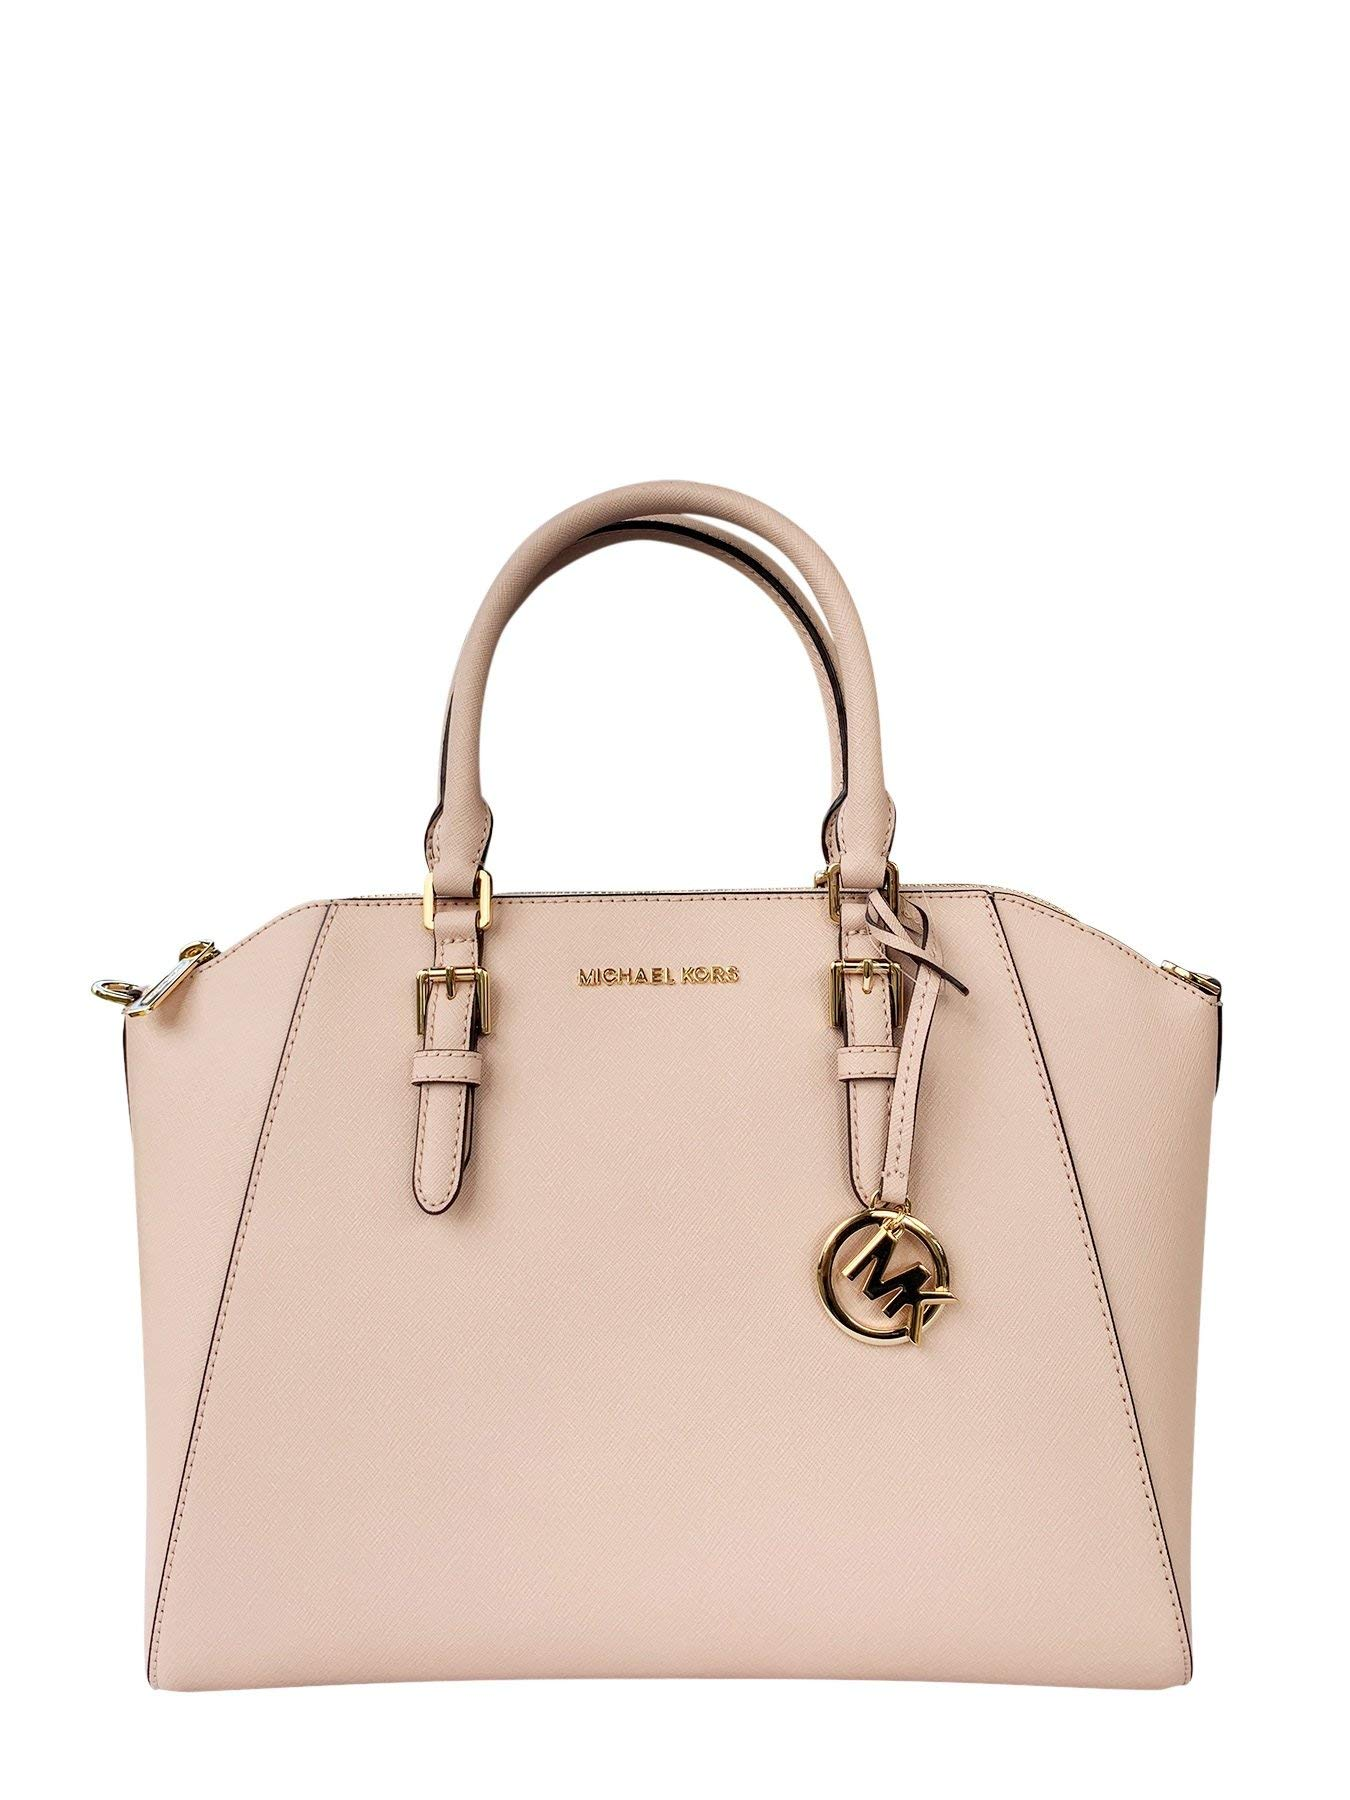 Michael Kors Large Ciara Saffiano leather Satchel (Ballet)